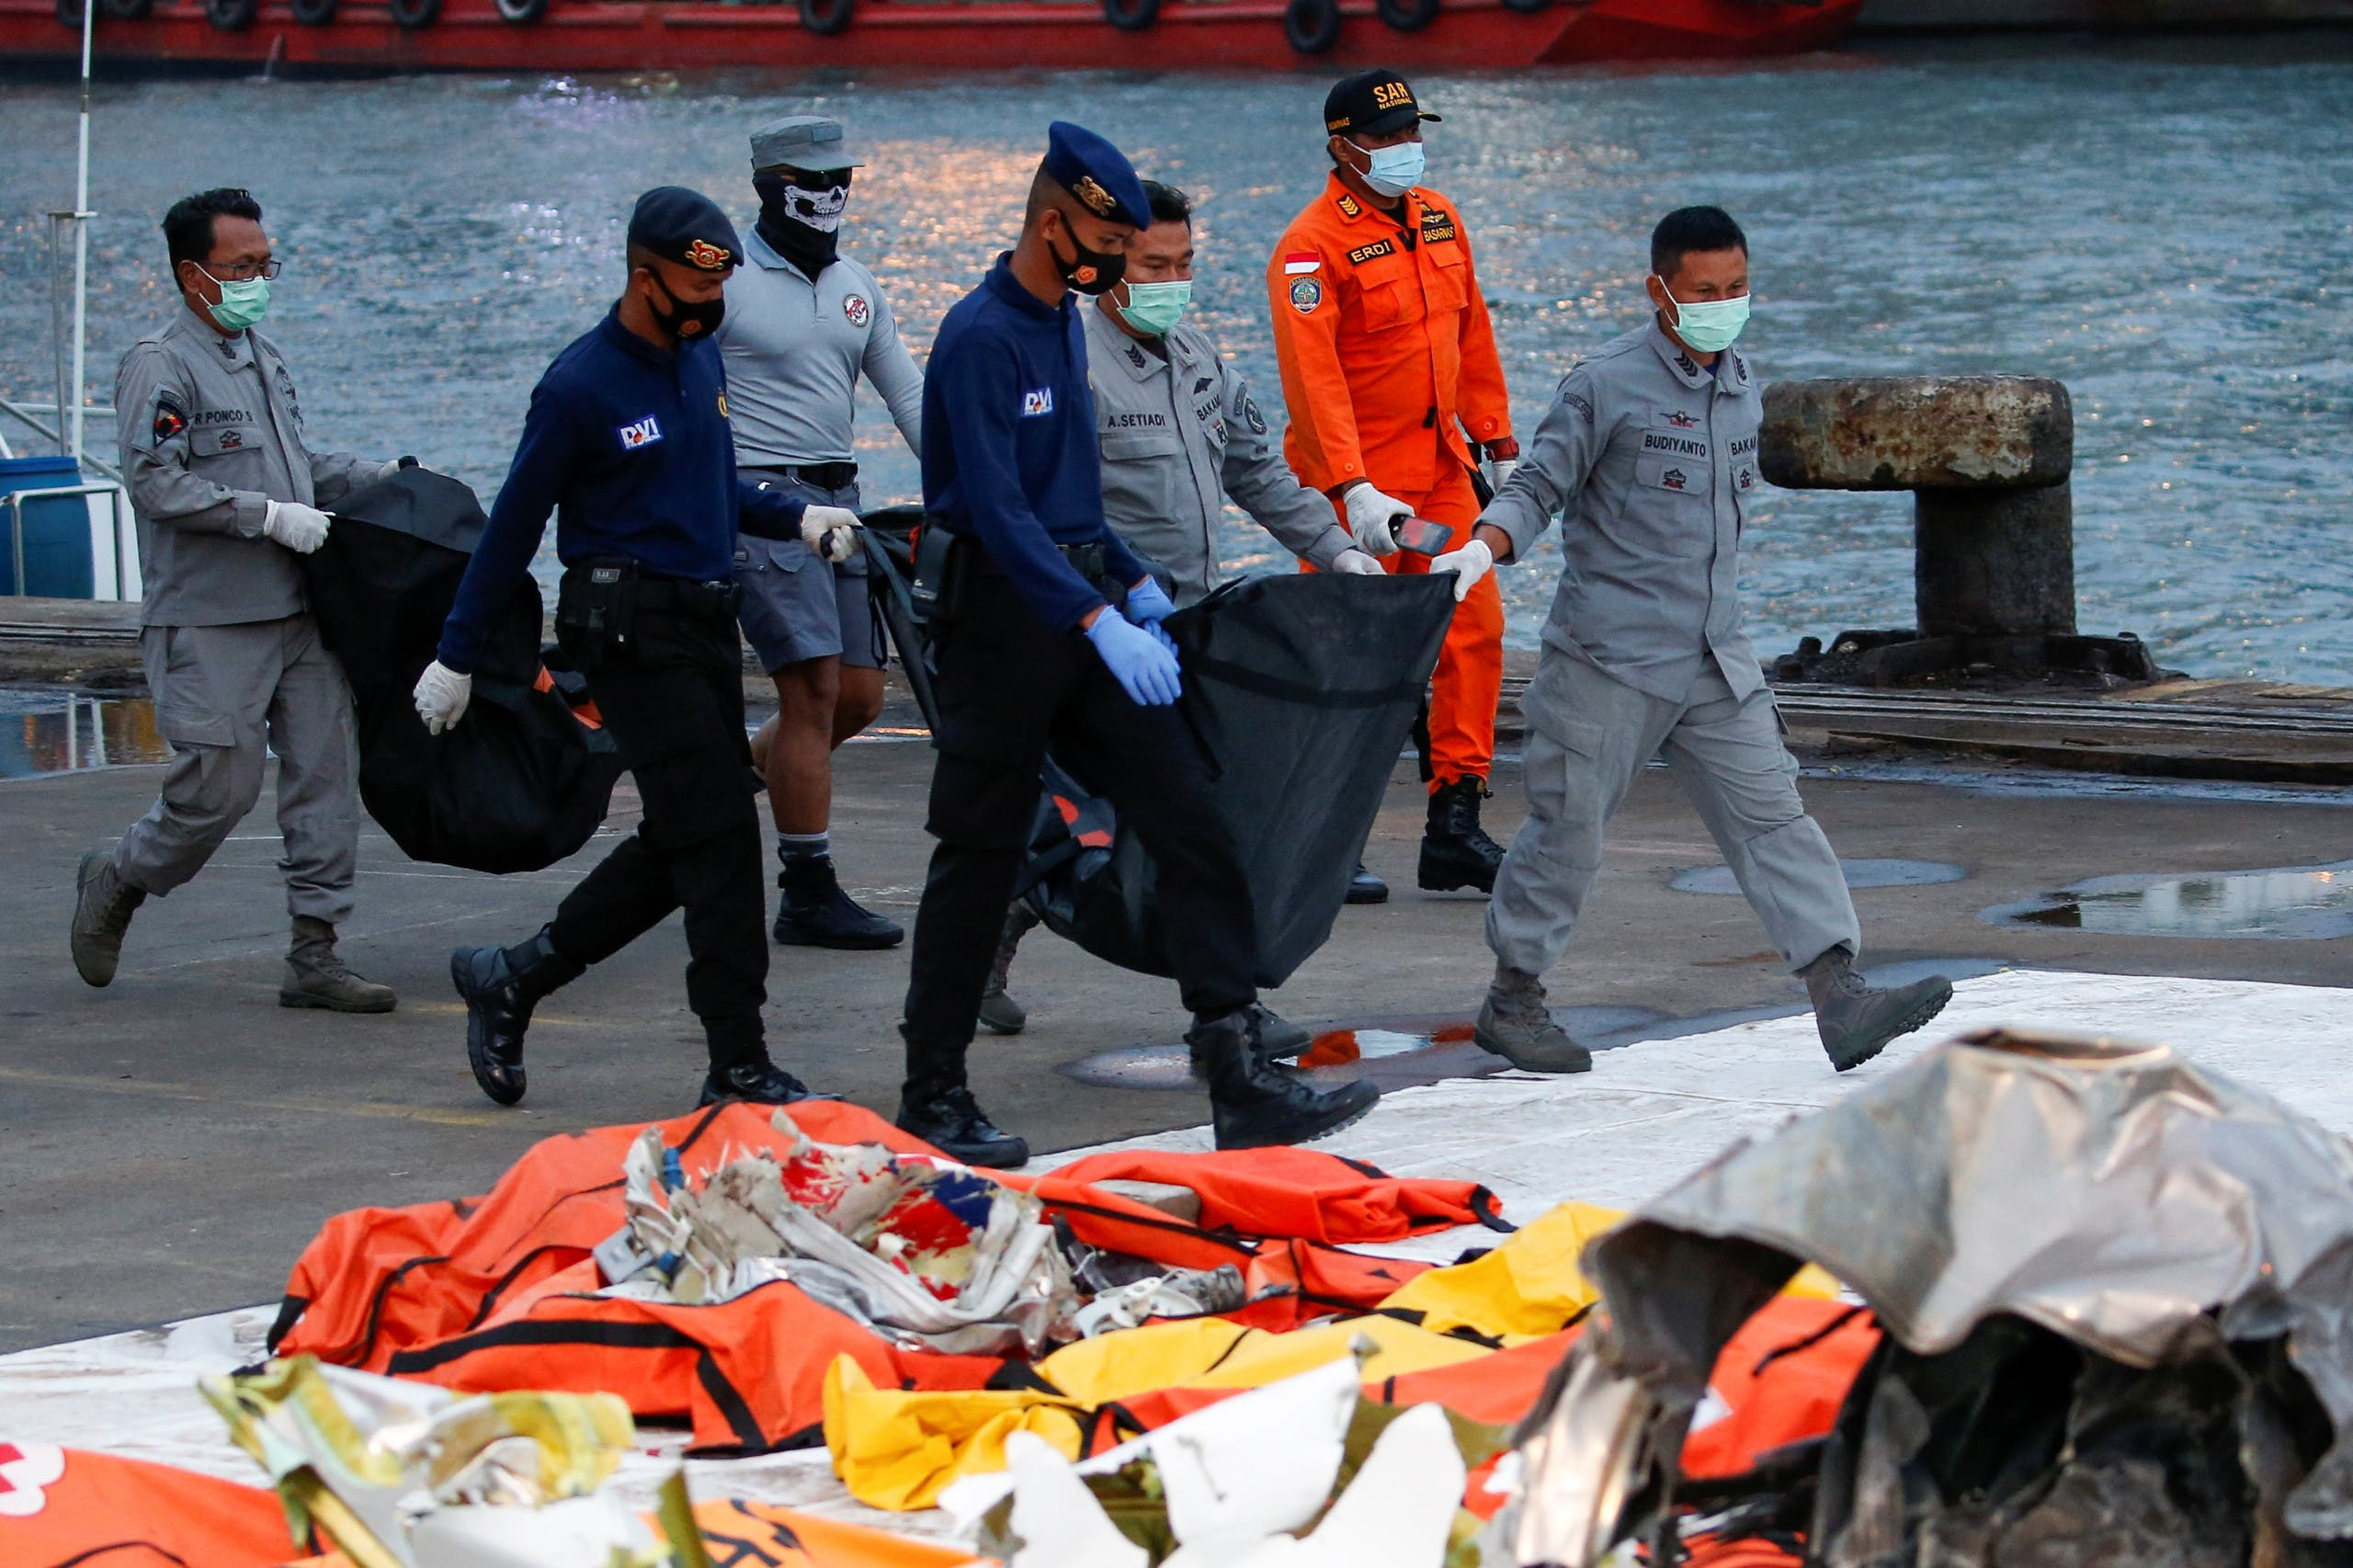 Indonesian DVI and navy personnel carry bags with body parts of the passengers of Sriwijaya Air flight SJ-182, which crashed to the sea, at Tanjung Priok port in Jakarta, Indonesia. (Reuters)